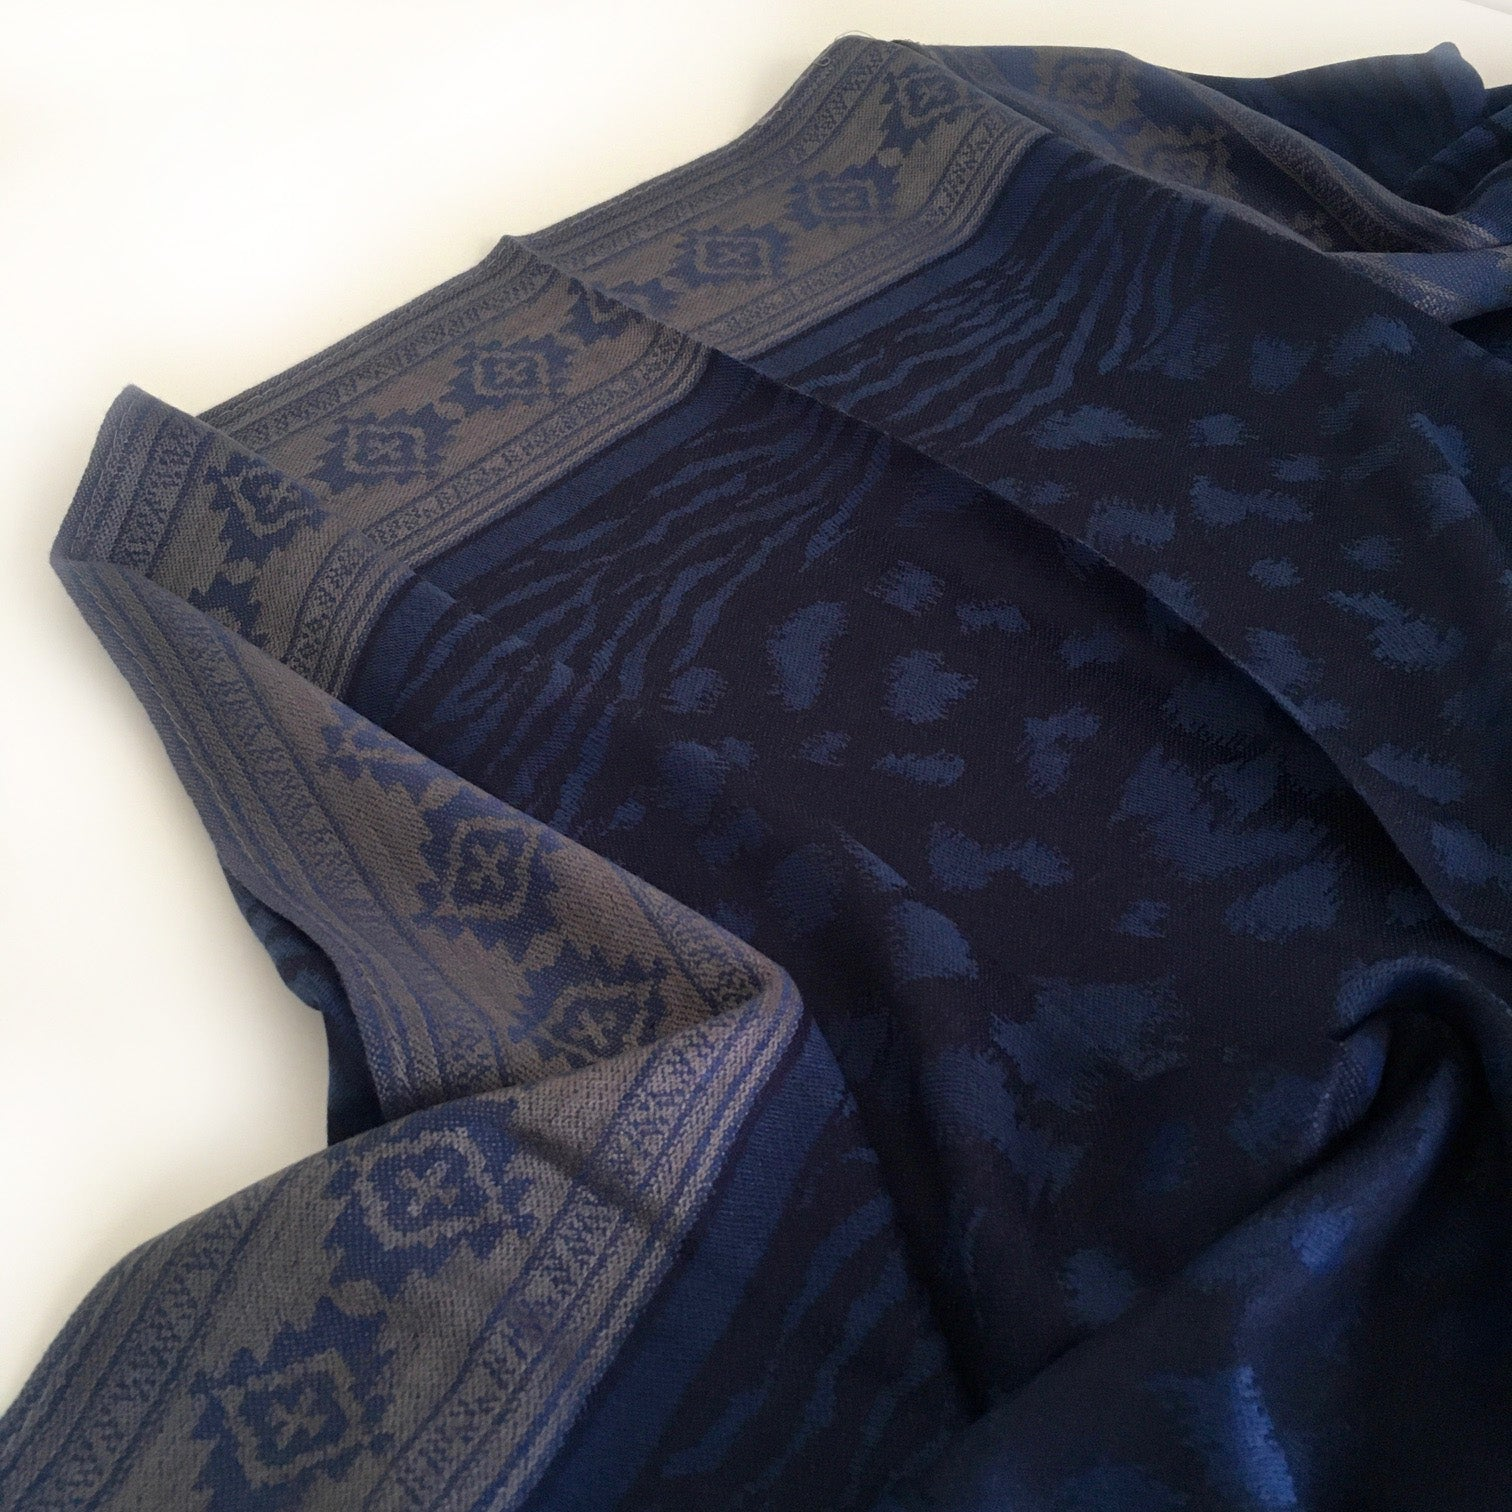 A-SHU NAVY BLUE ANIMAL PRINT REVERSIBLE PASHMINA SHAWL SCARF - A-SHU.CO.UK